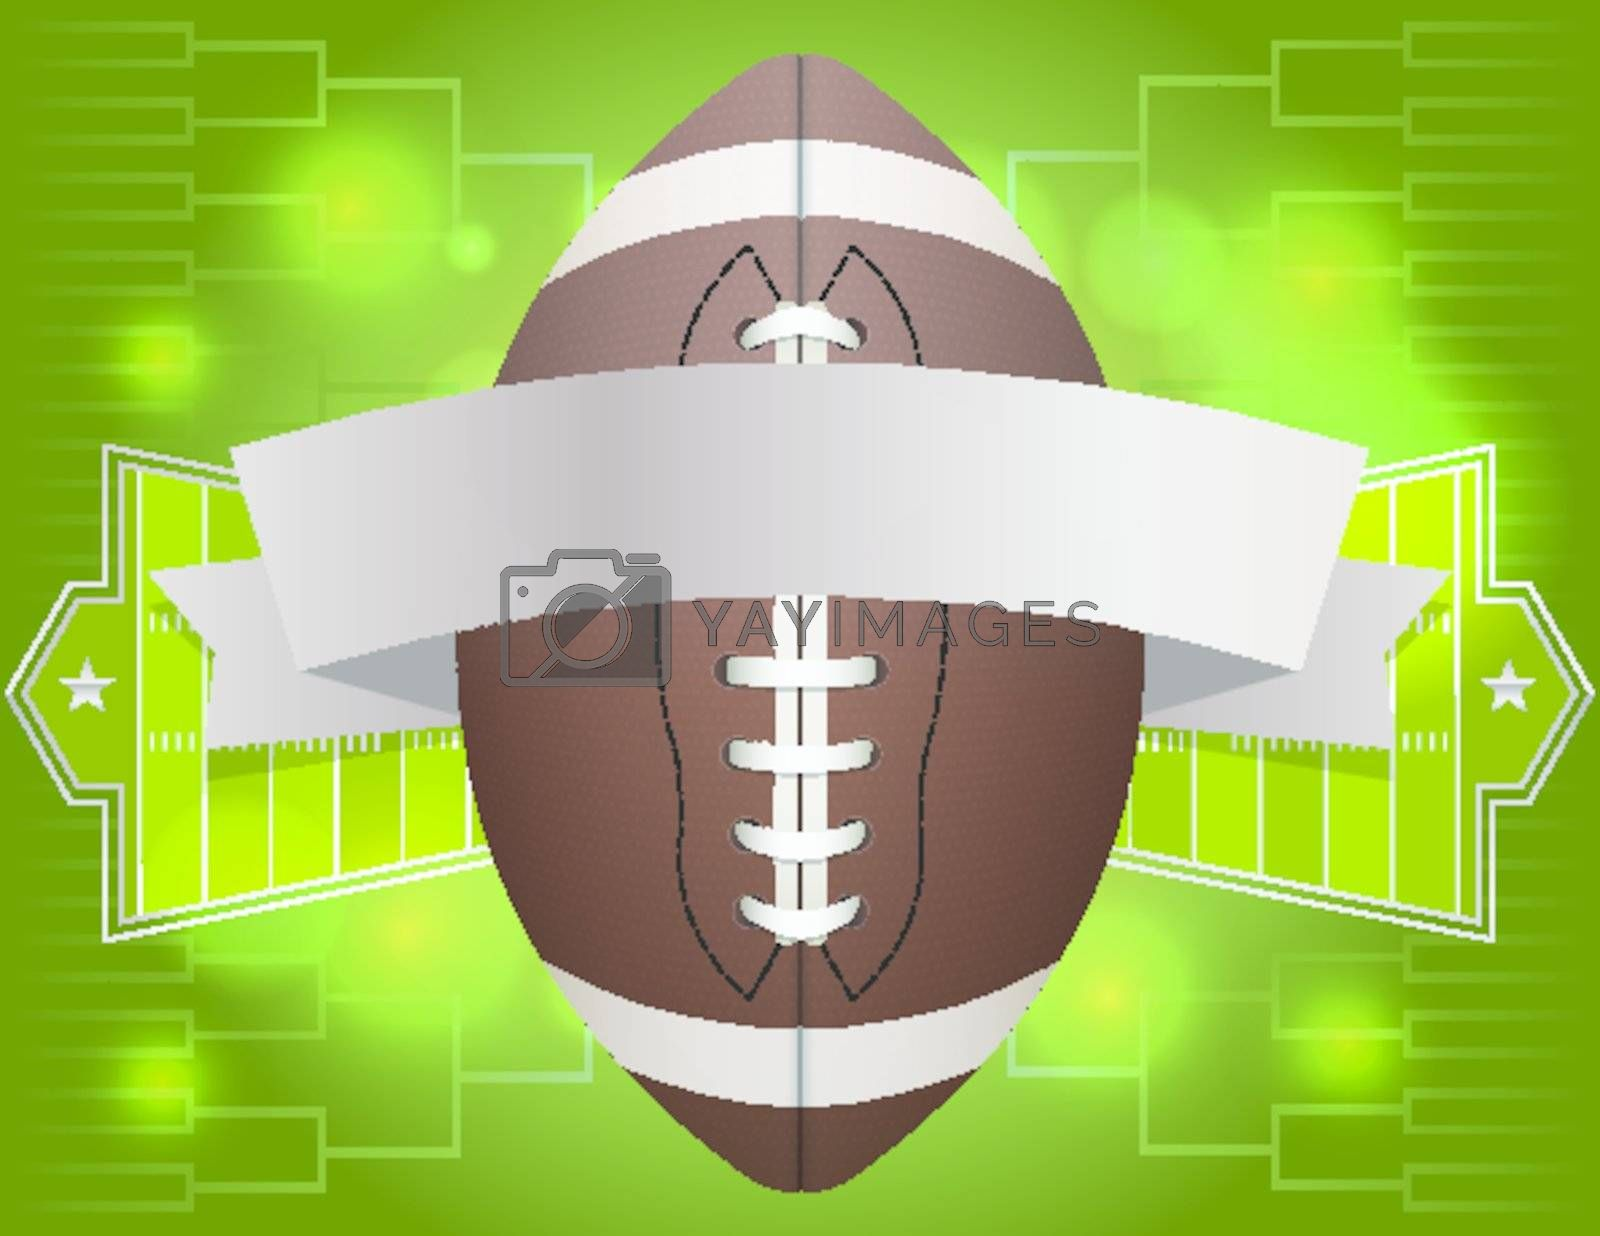 American Football Banner Illustration Royalty Free Stock Image Yayimages Royalty Free Stock Photos And Vectors